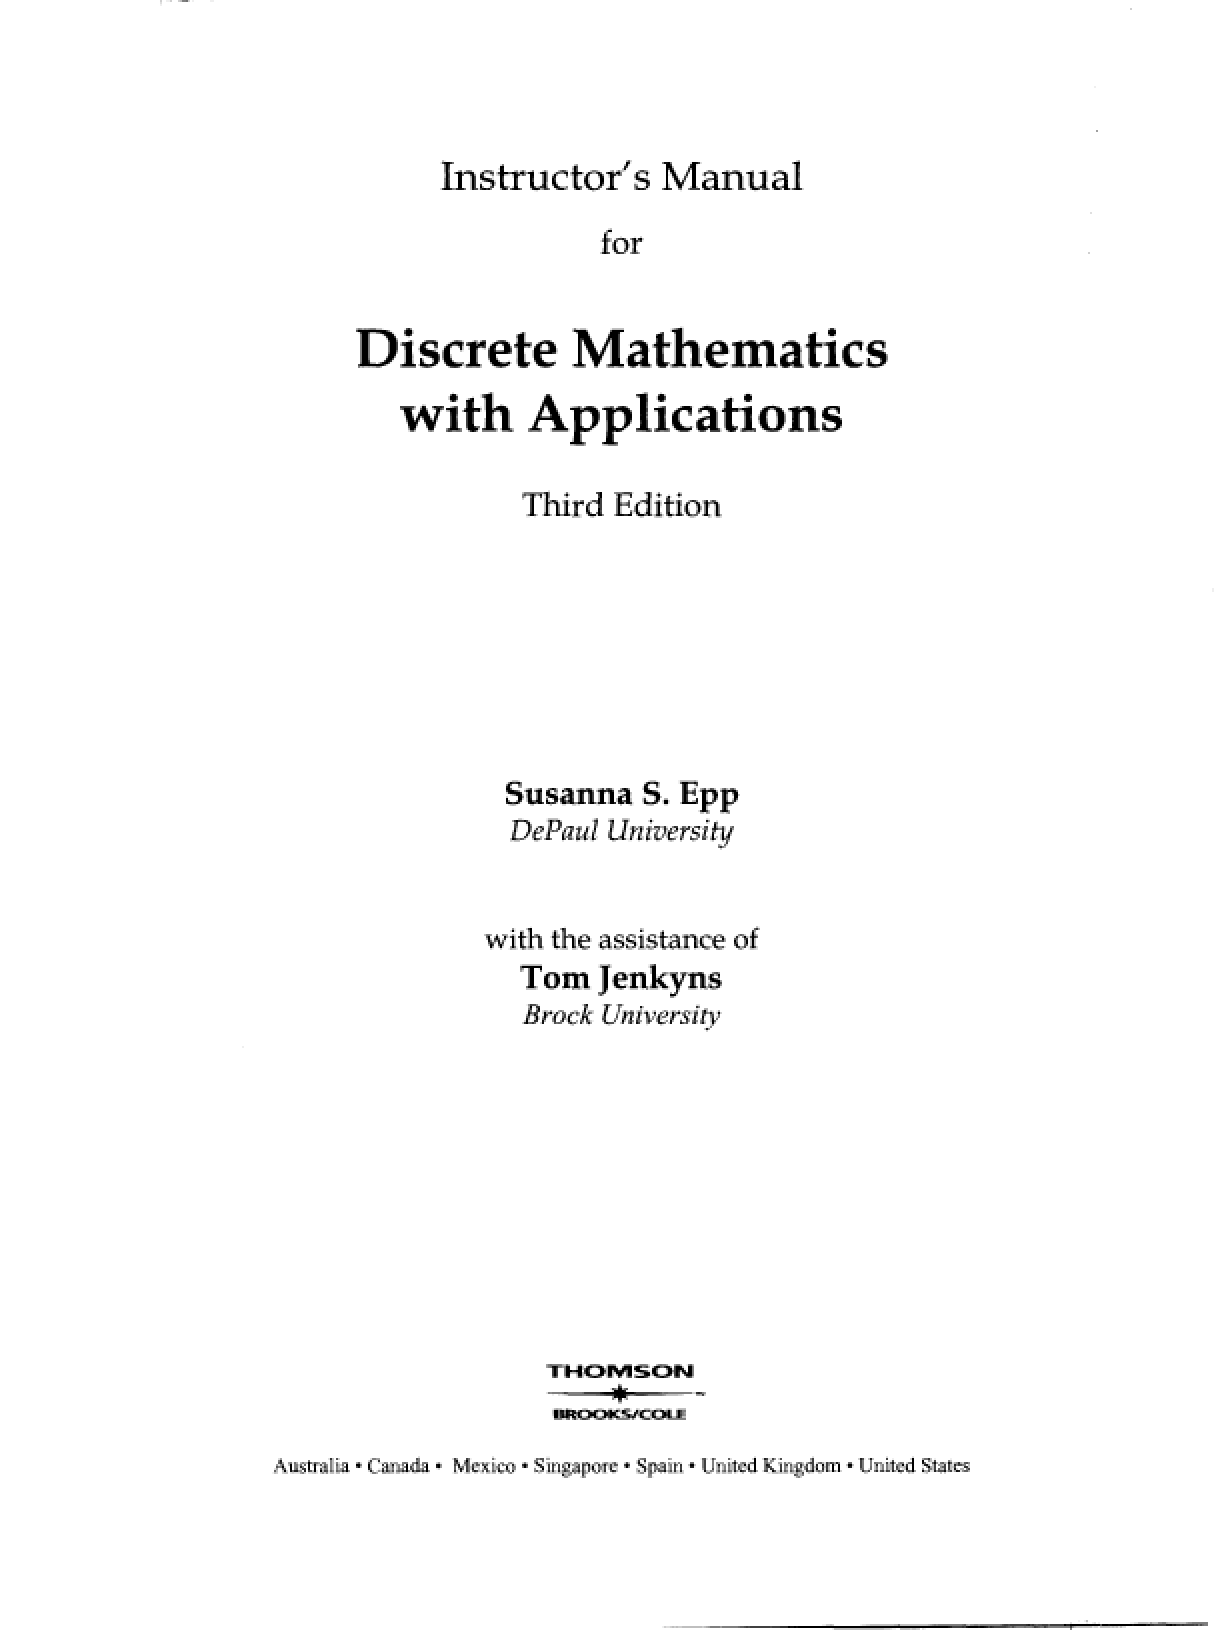 Discrete Structures With Applications 3rd Edition Solution Manual Susanna  S. EPP